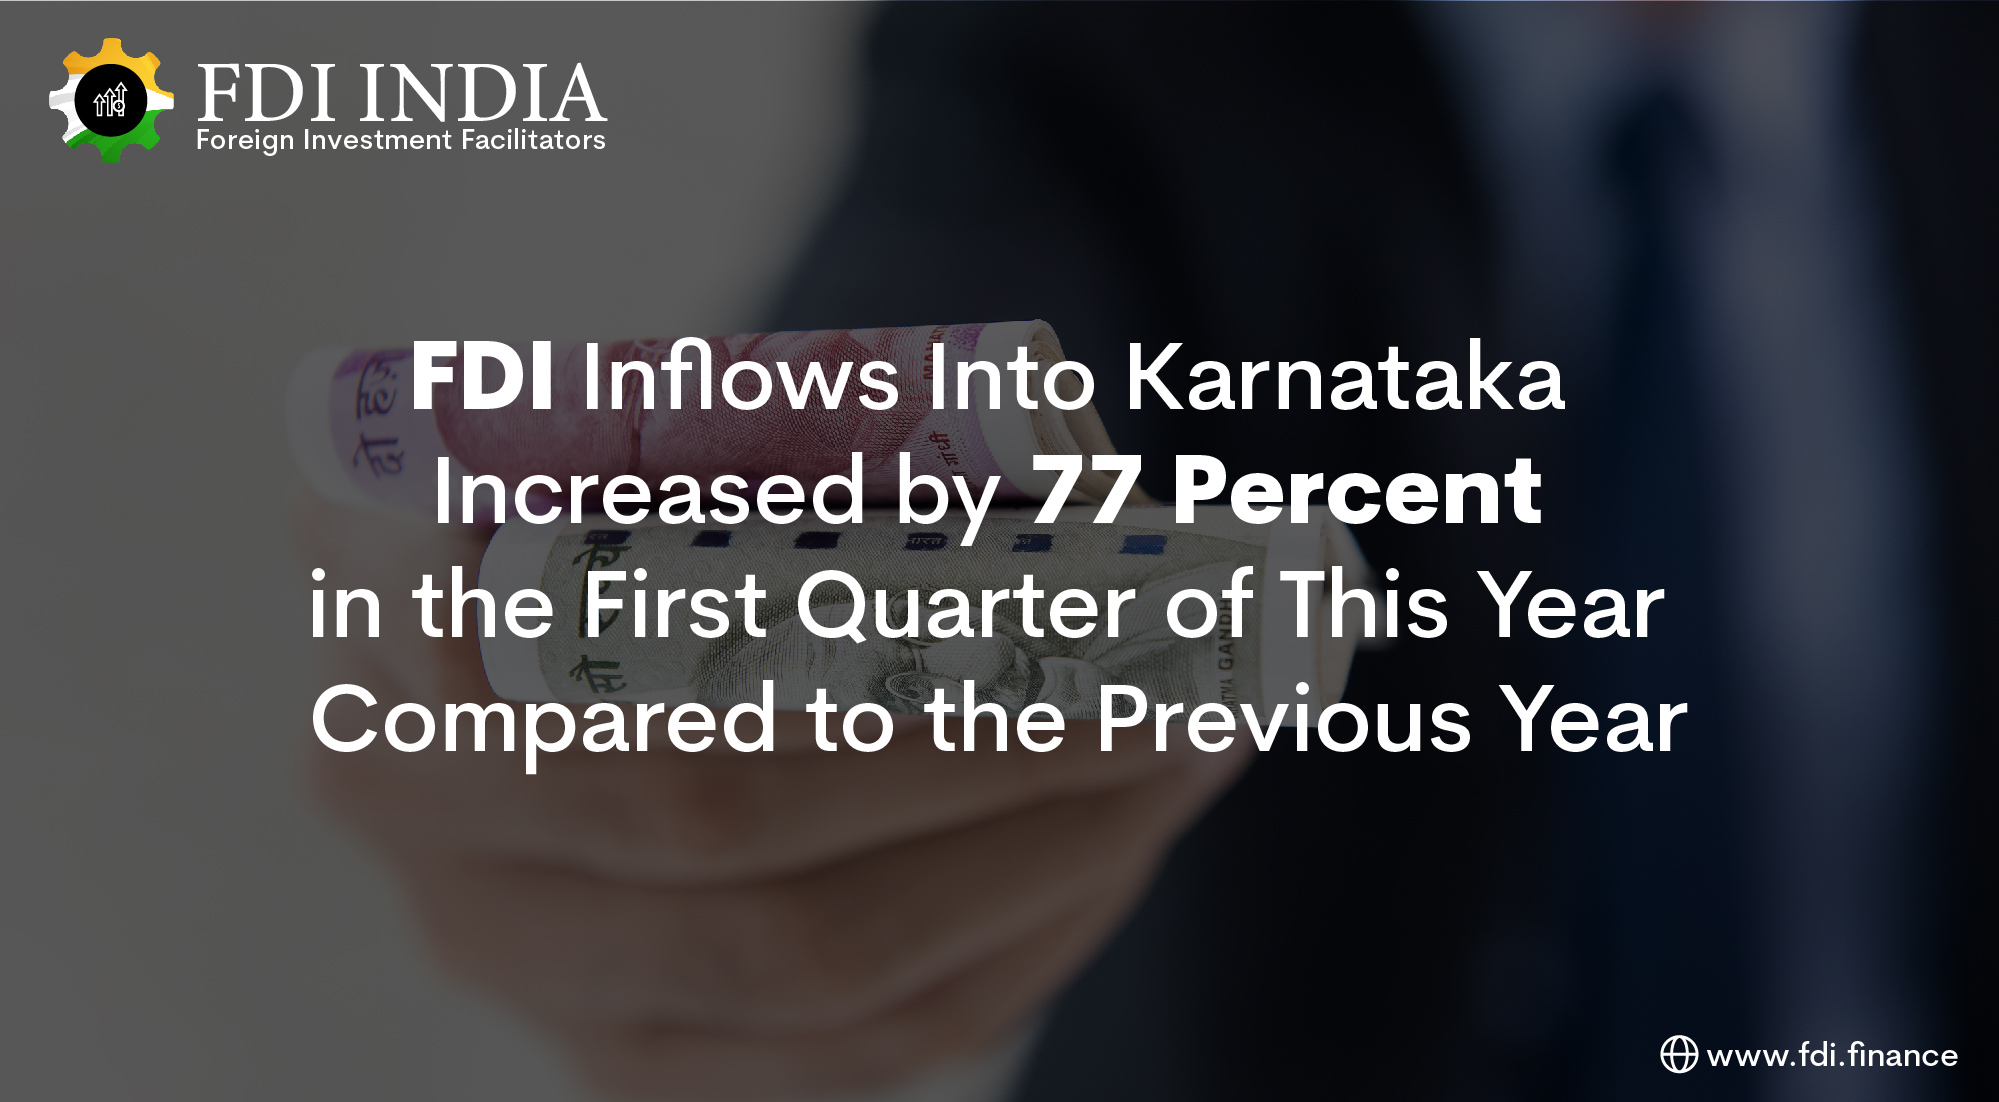 FDI Inflows Into Karnataka Increased by 77 Percent in the First Quarter of This Year Compared to the Previous Year